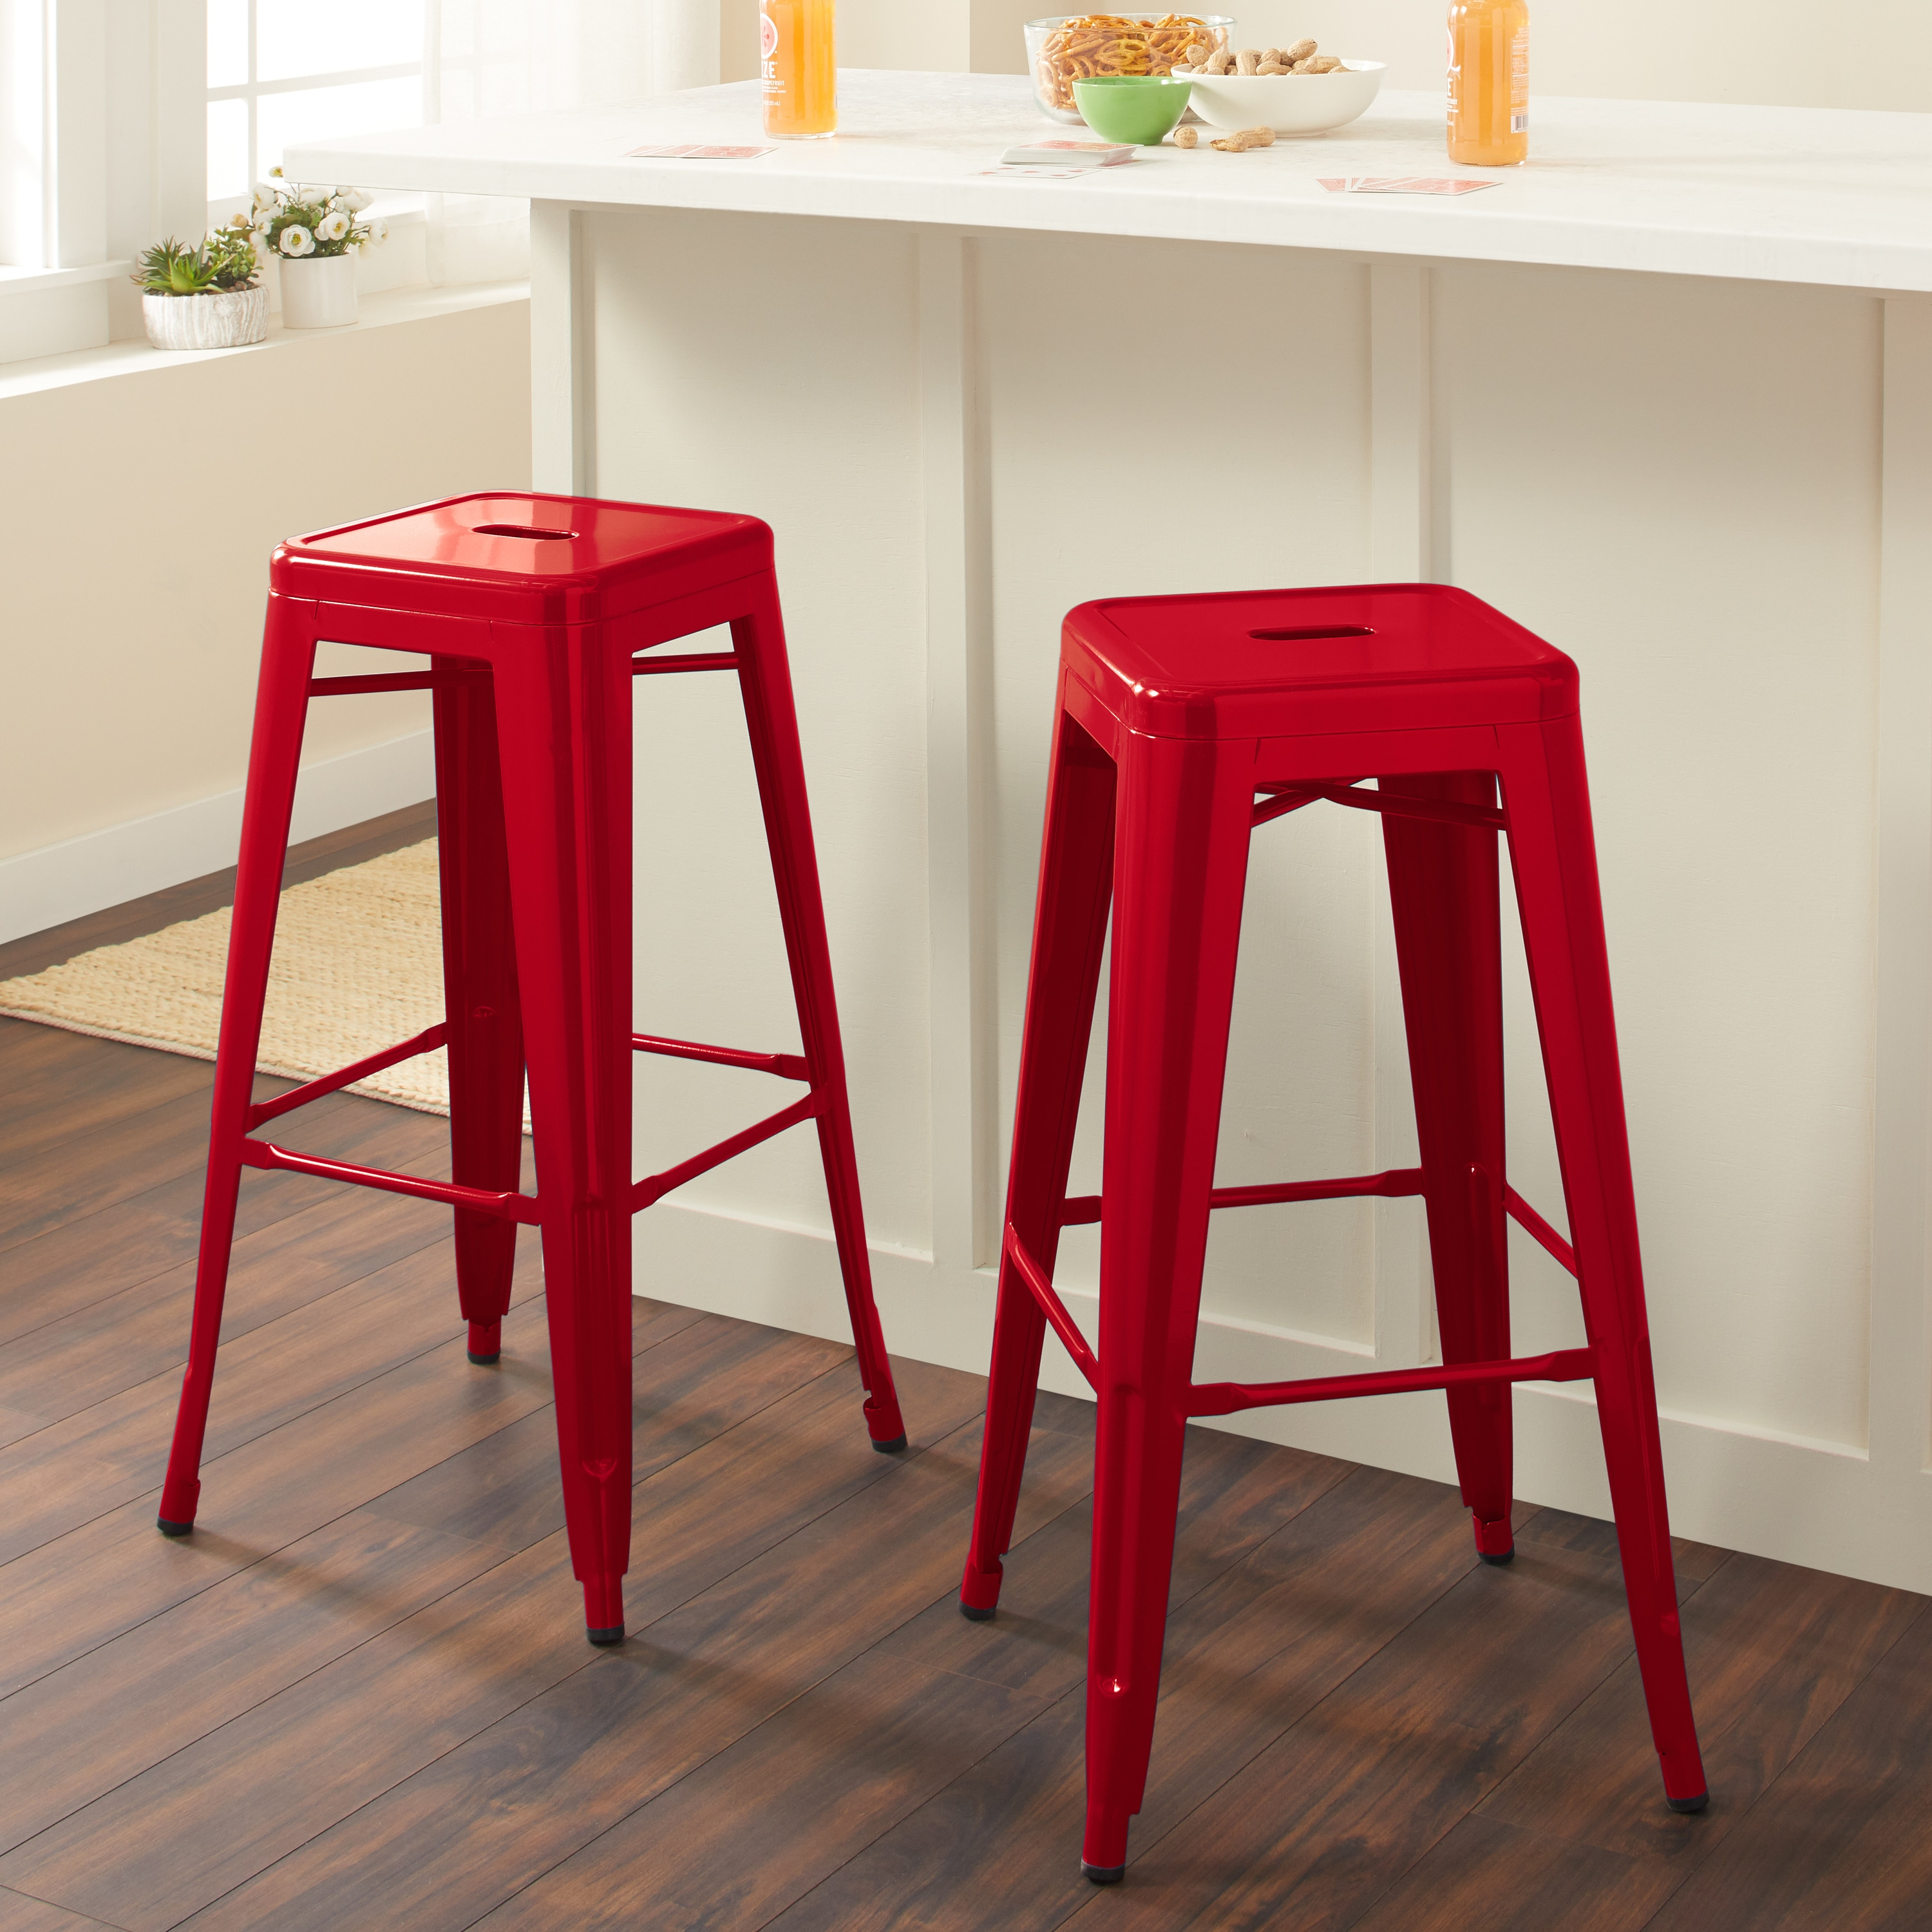 Tabourets Walmart Tabouret 30 Inch Red Metal Bar Stools Set Of 2 Walmart